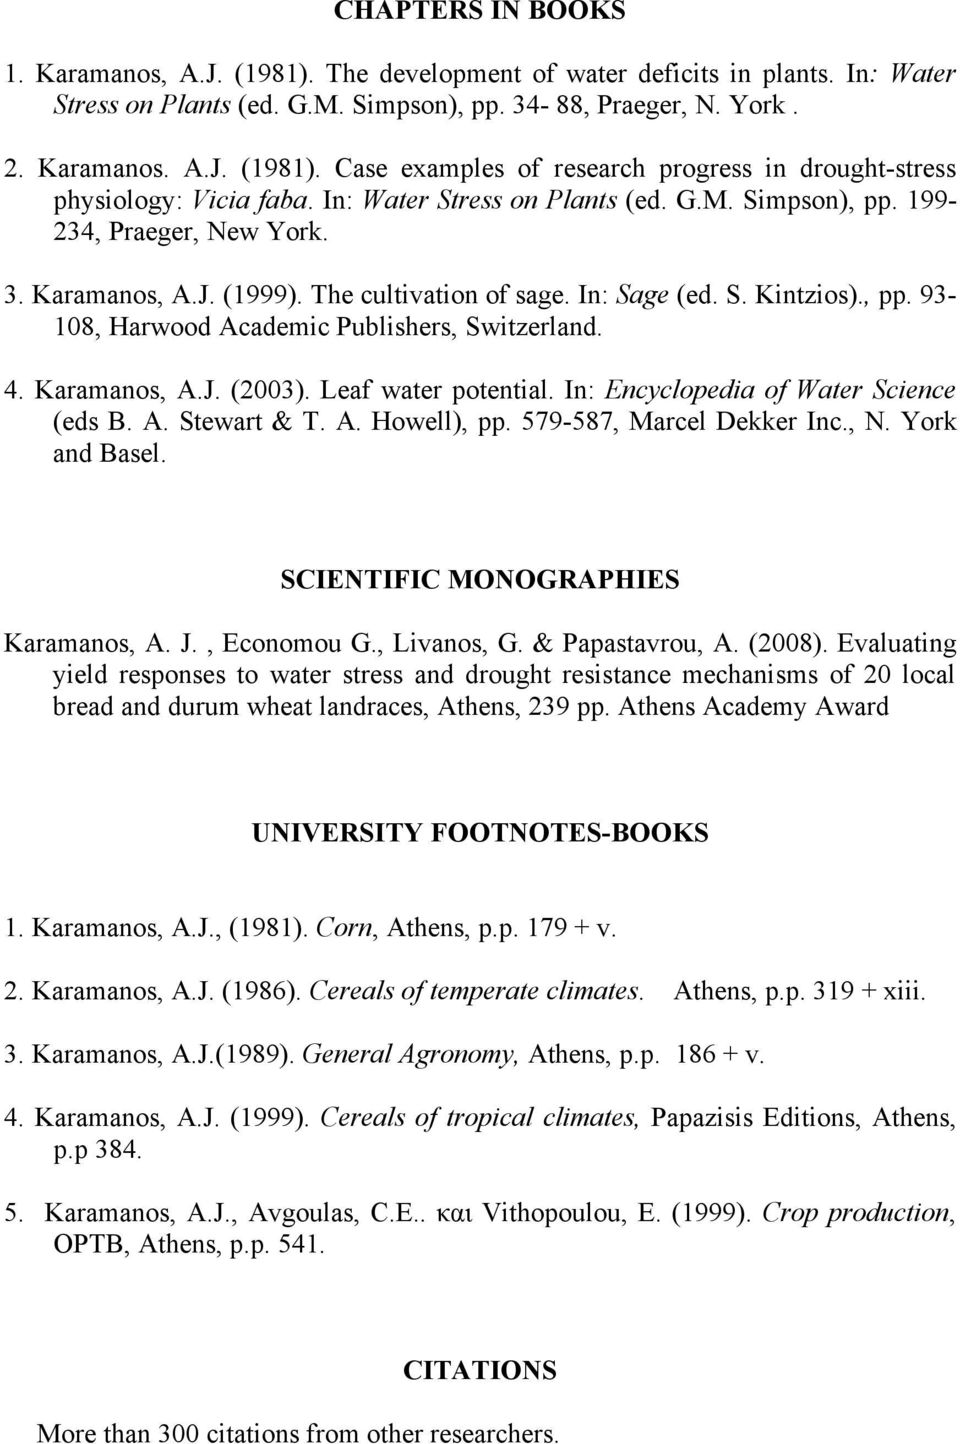 4. Κaramanos, A.J. (2003). Leaf water potential. In: Encyclopedia of Water Science (eds B. A. Stewart & T. A. Howell), pp. 579-587, Marcel Dekker Inc., N. York and Basel.